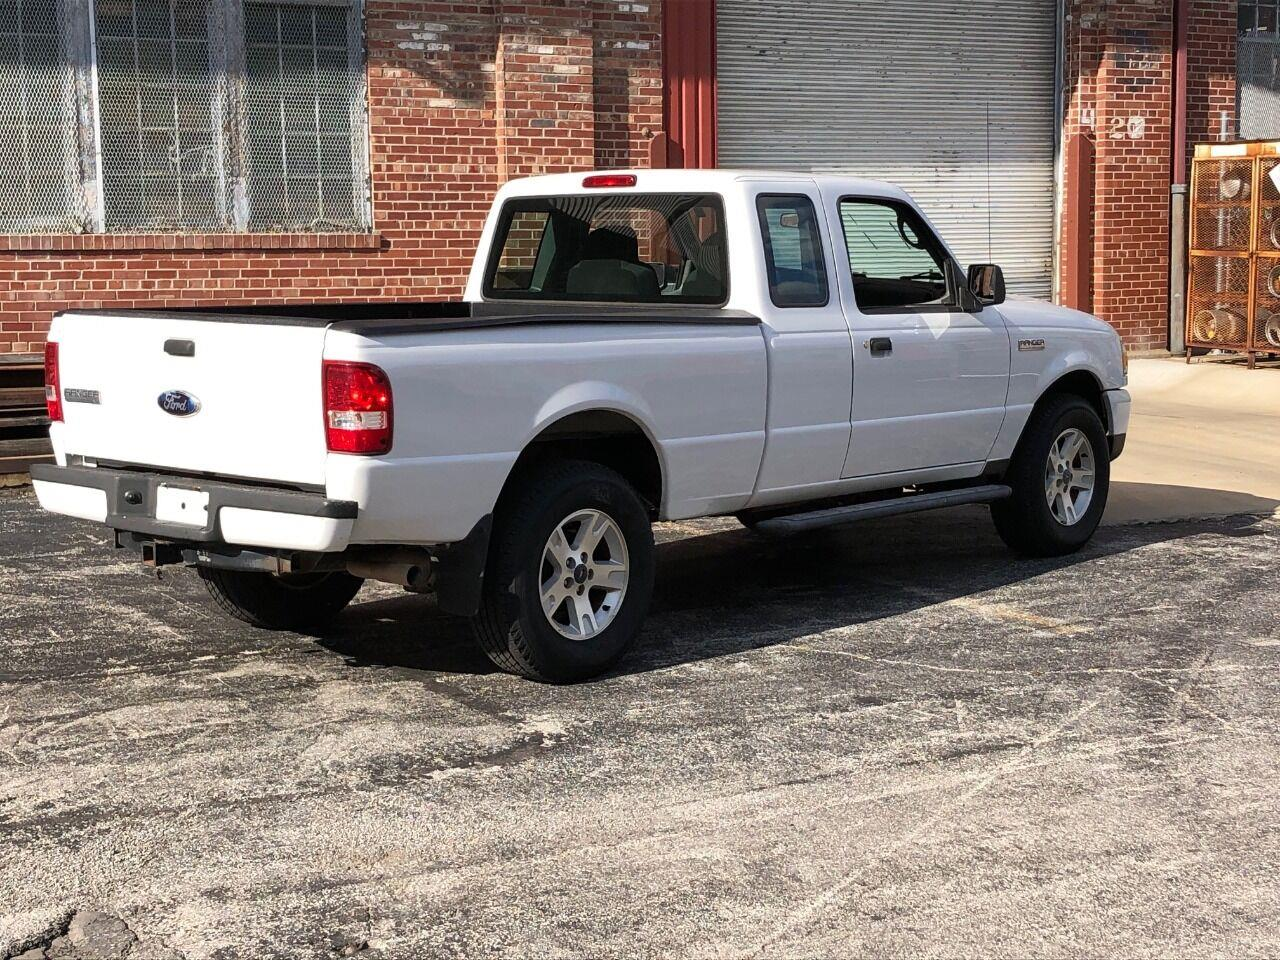 2006 Ford Ranger (CC-1364025) for sale in Saint Charles, Missouri